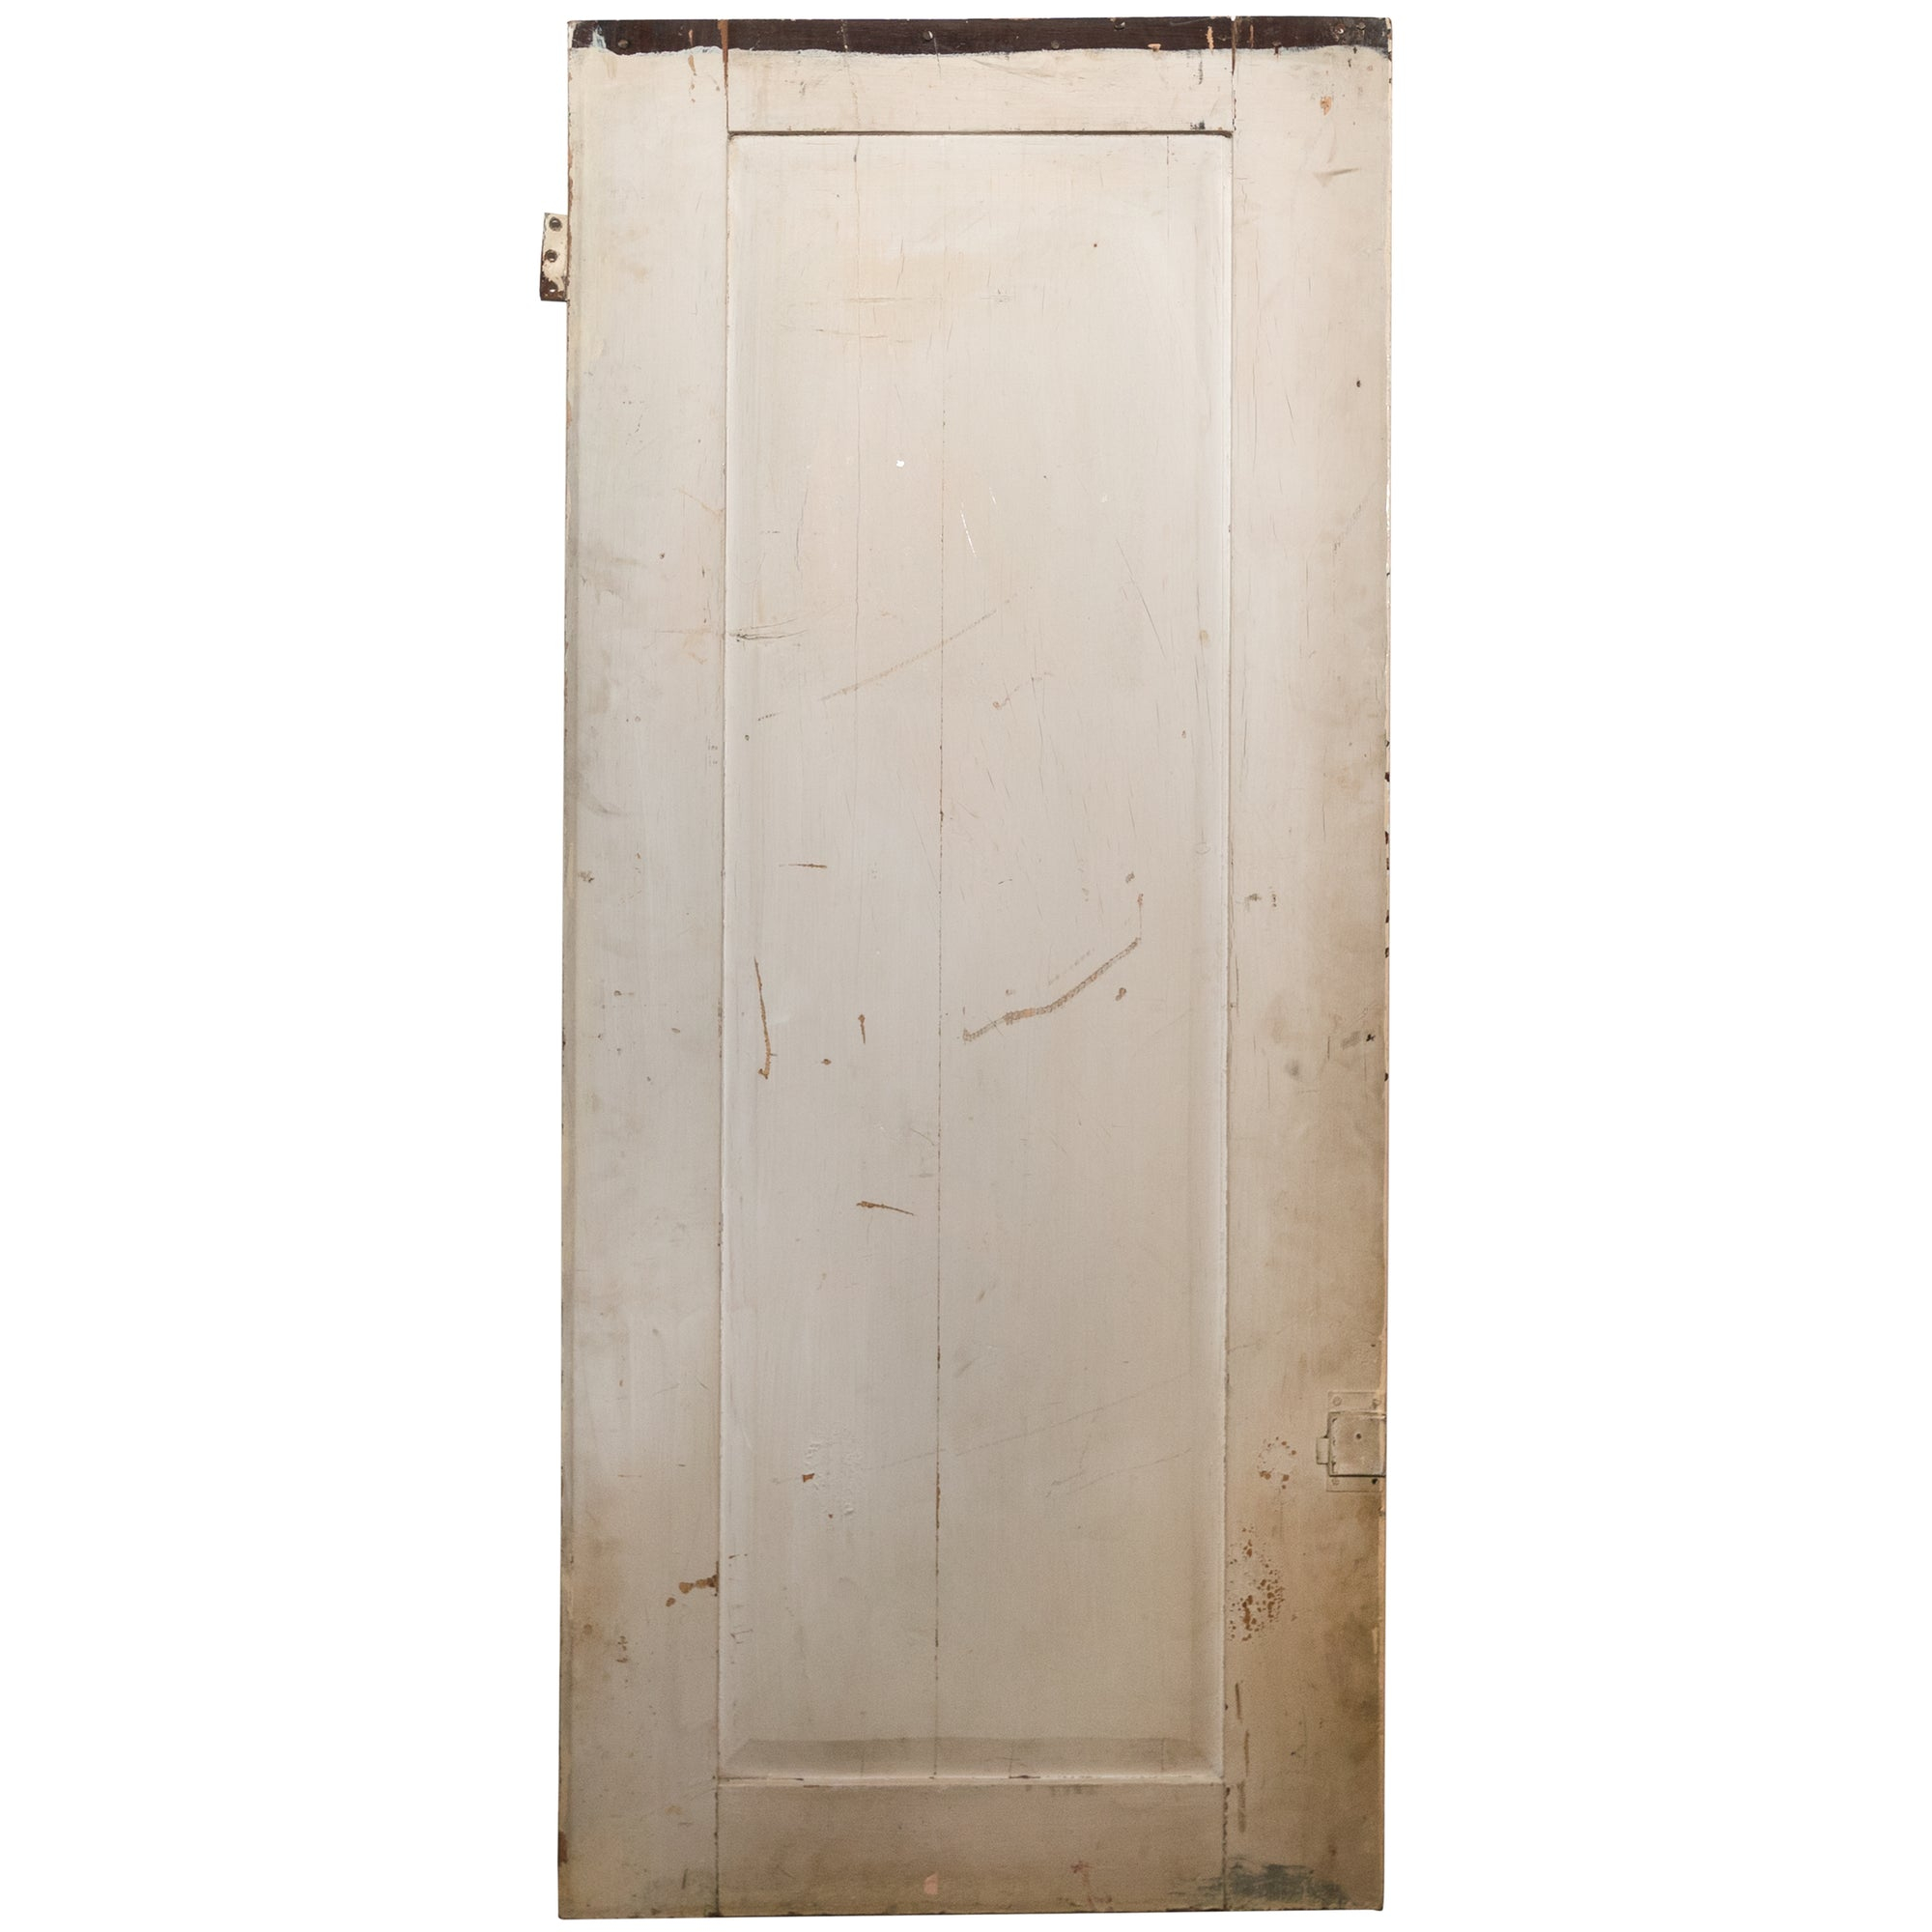 Antique Victorian Pine Cupboard Door - 143cm x 61cm